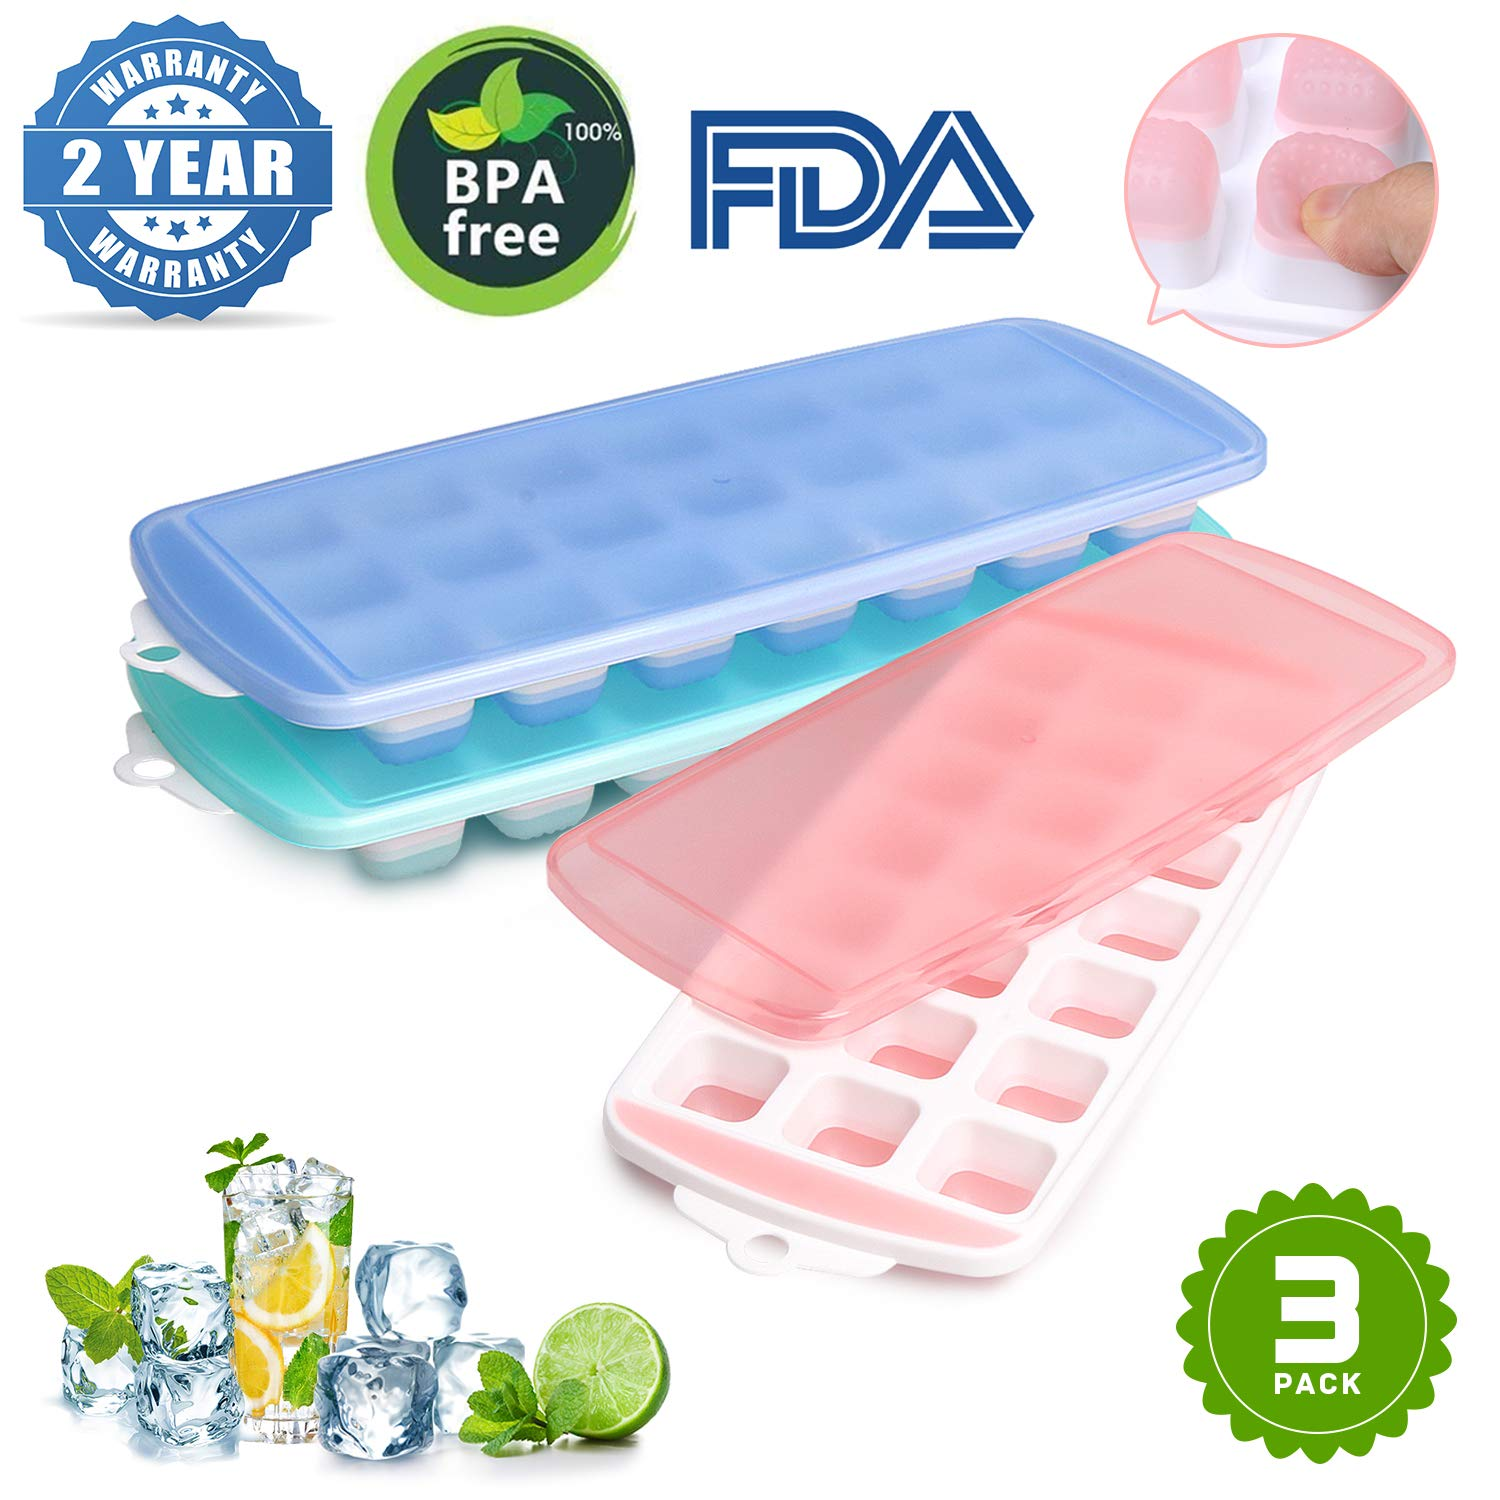 Ice Cube Trays,Ice Tray Food Grade Flexible Silicone Ice Cube Tray Molds with Lids, Easy Release Ice Trays Make 63 Ice Cube, Stackable Dishwasher Safe, Non-toxic,BPA Free (3 Packs)